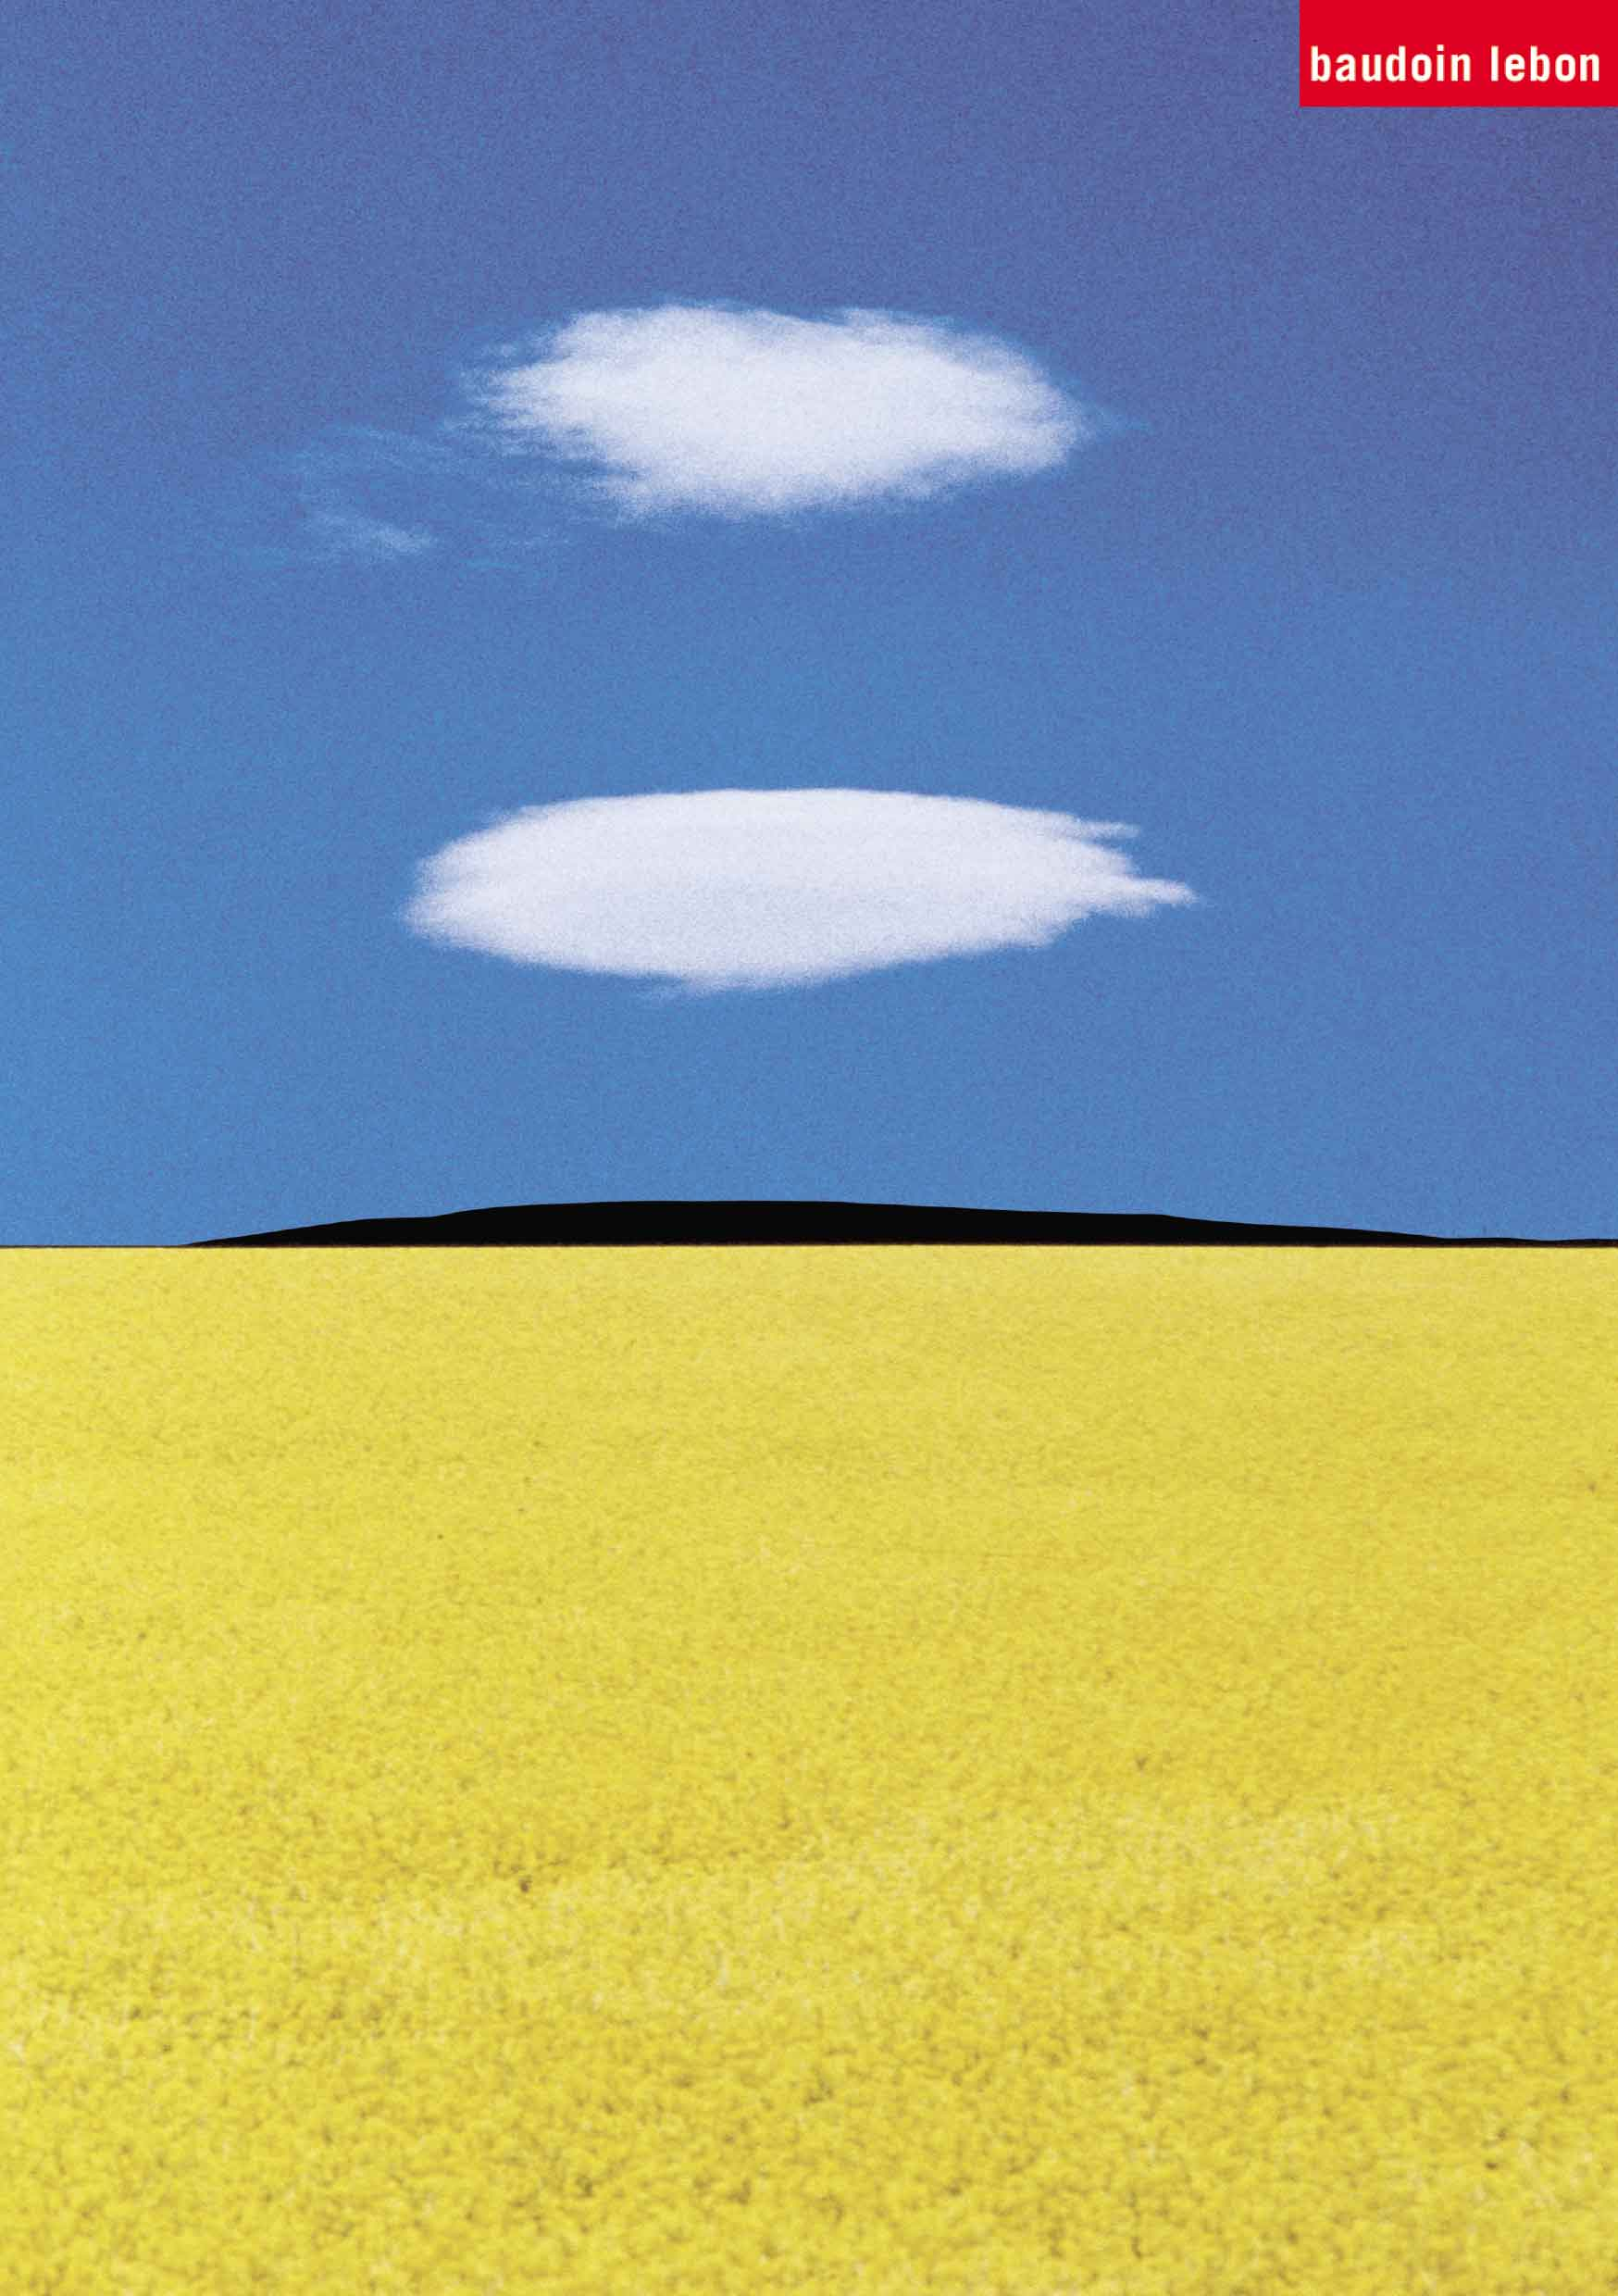 FRANCO FONTANA - PARIS